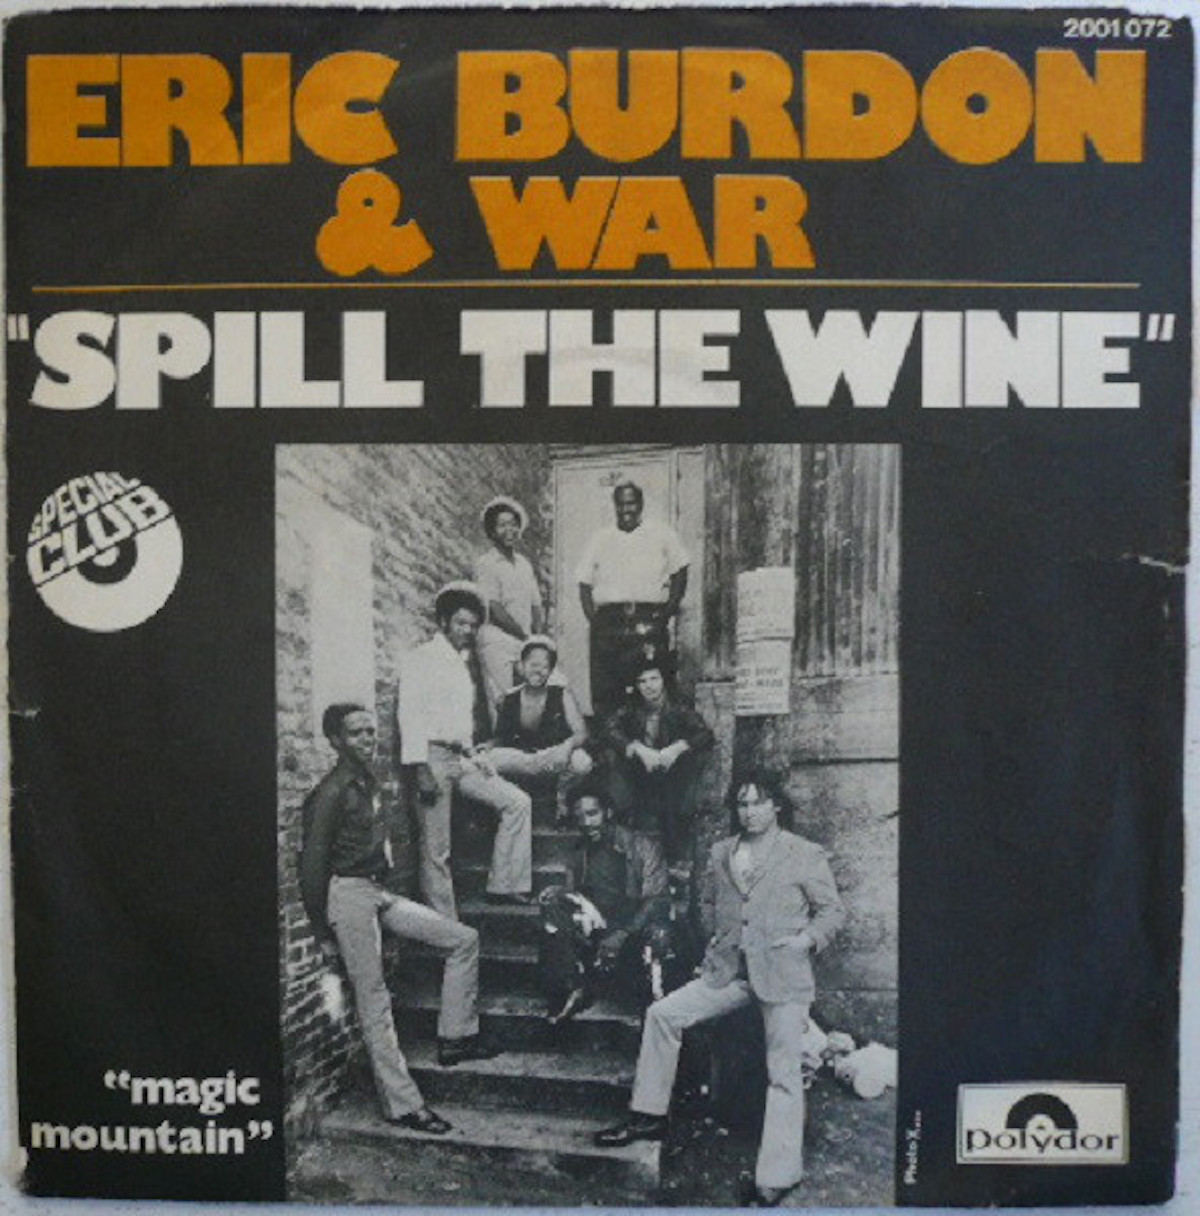 spill the wine album cover by eric burdon and war